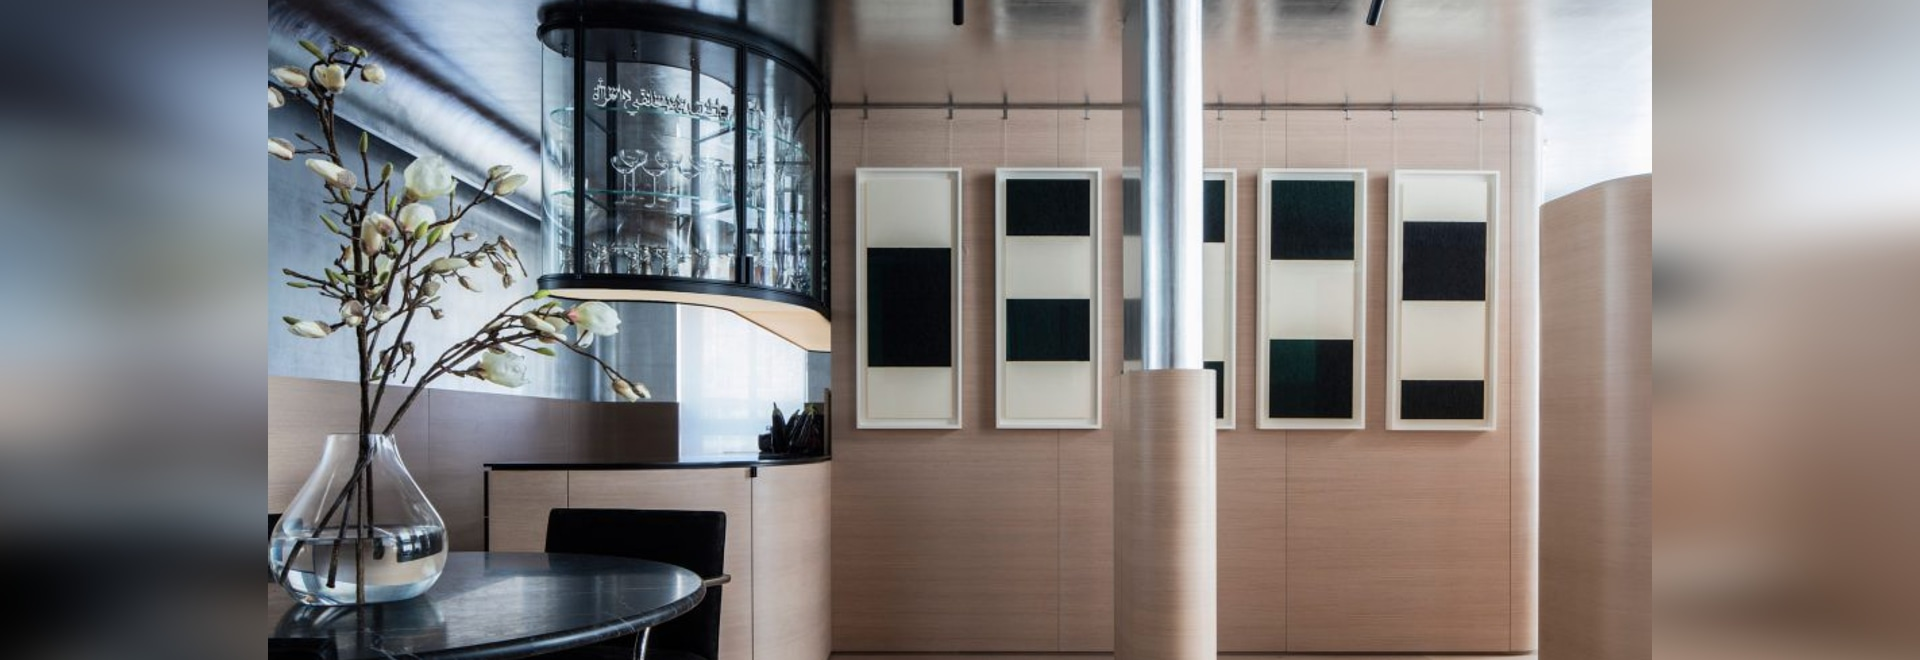 Ghiora Aharoni uses art deco references for Chelsea pied-à-terre interior